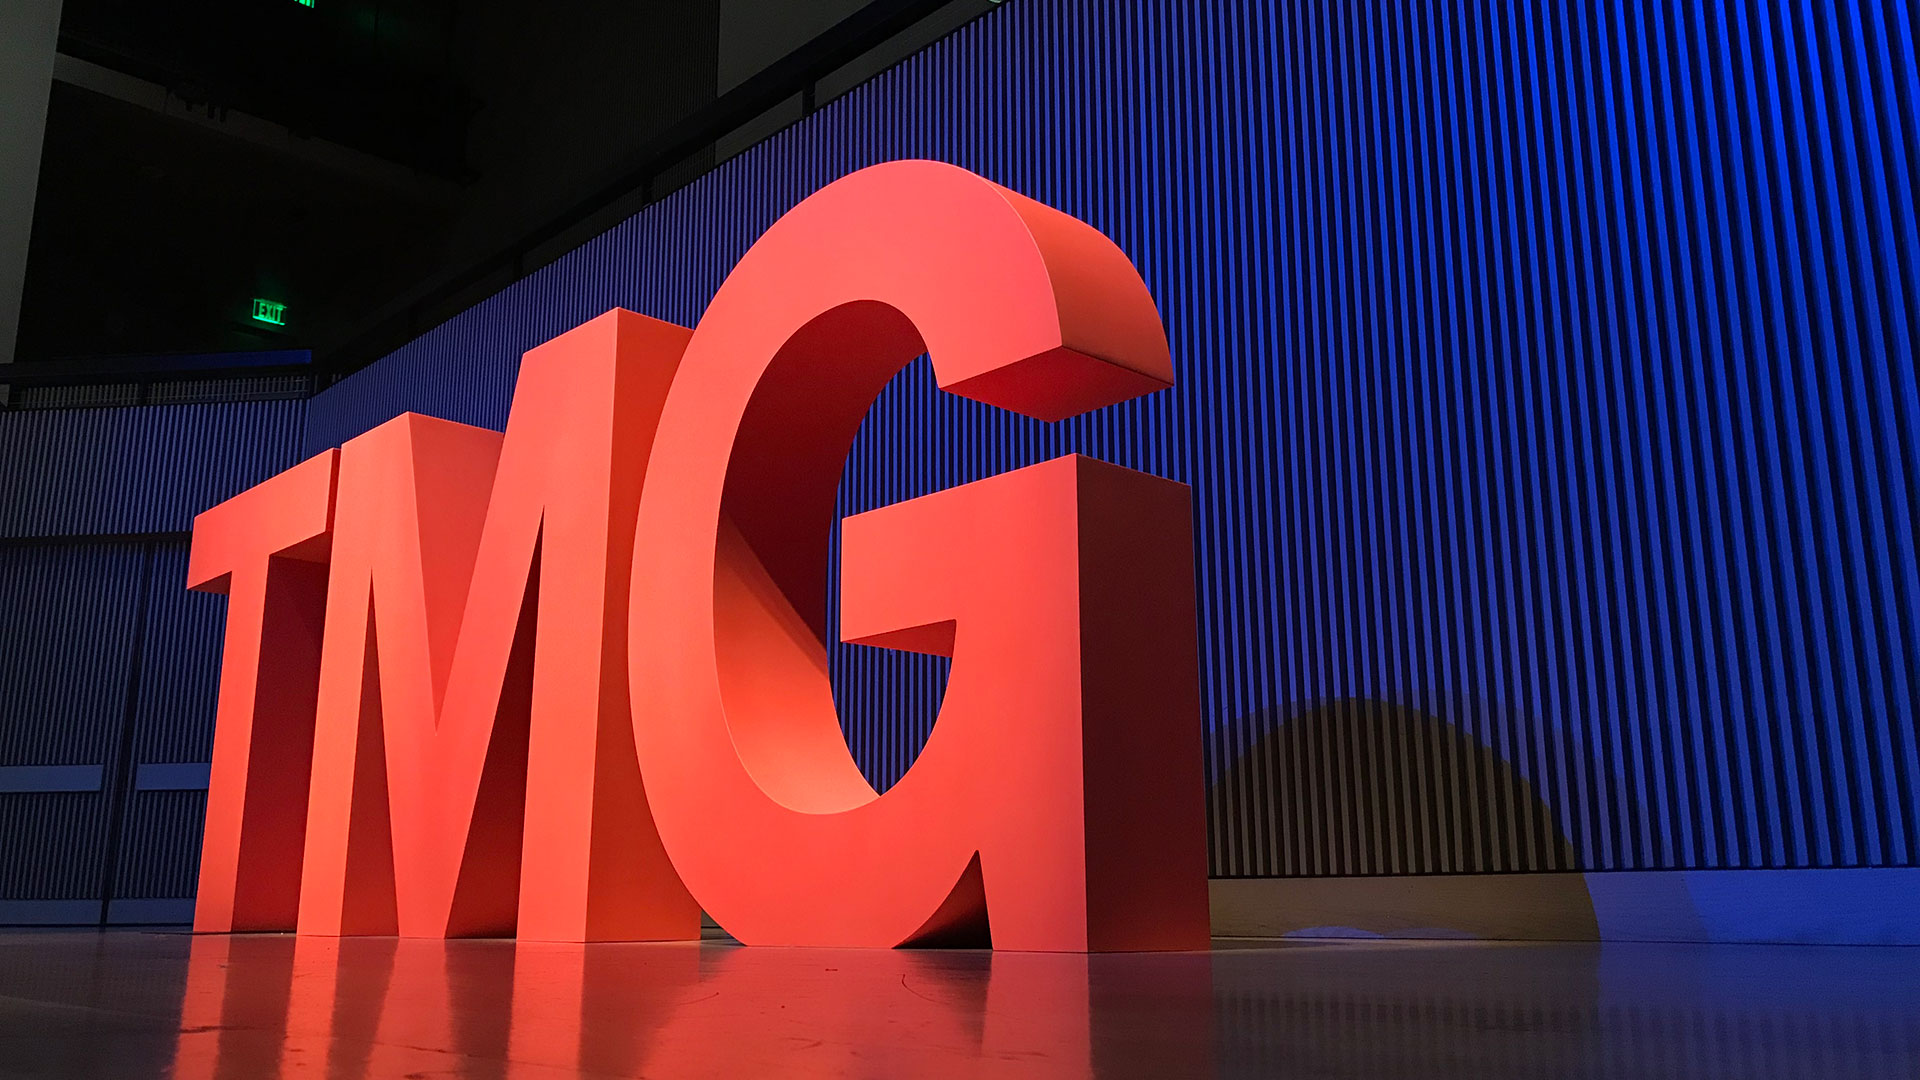 5 foot-tall wooden letters 'TMG' painted bright red on stage with blue light background.